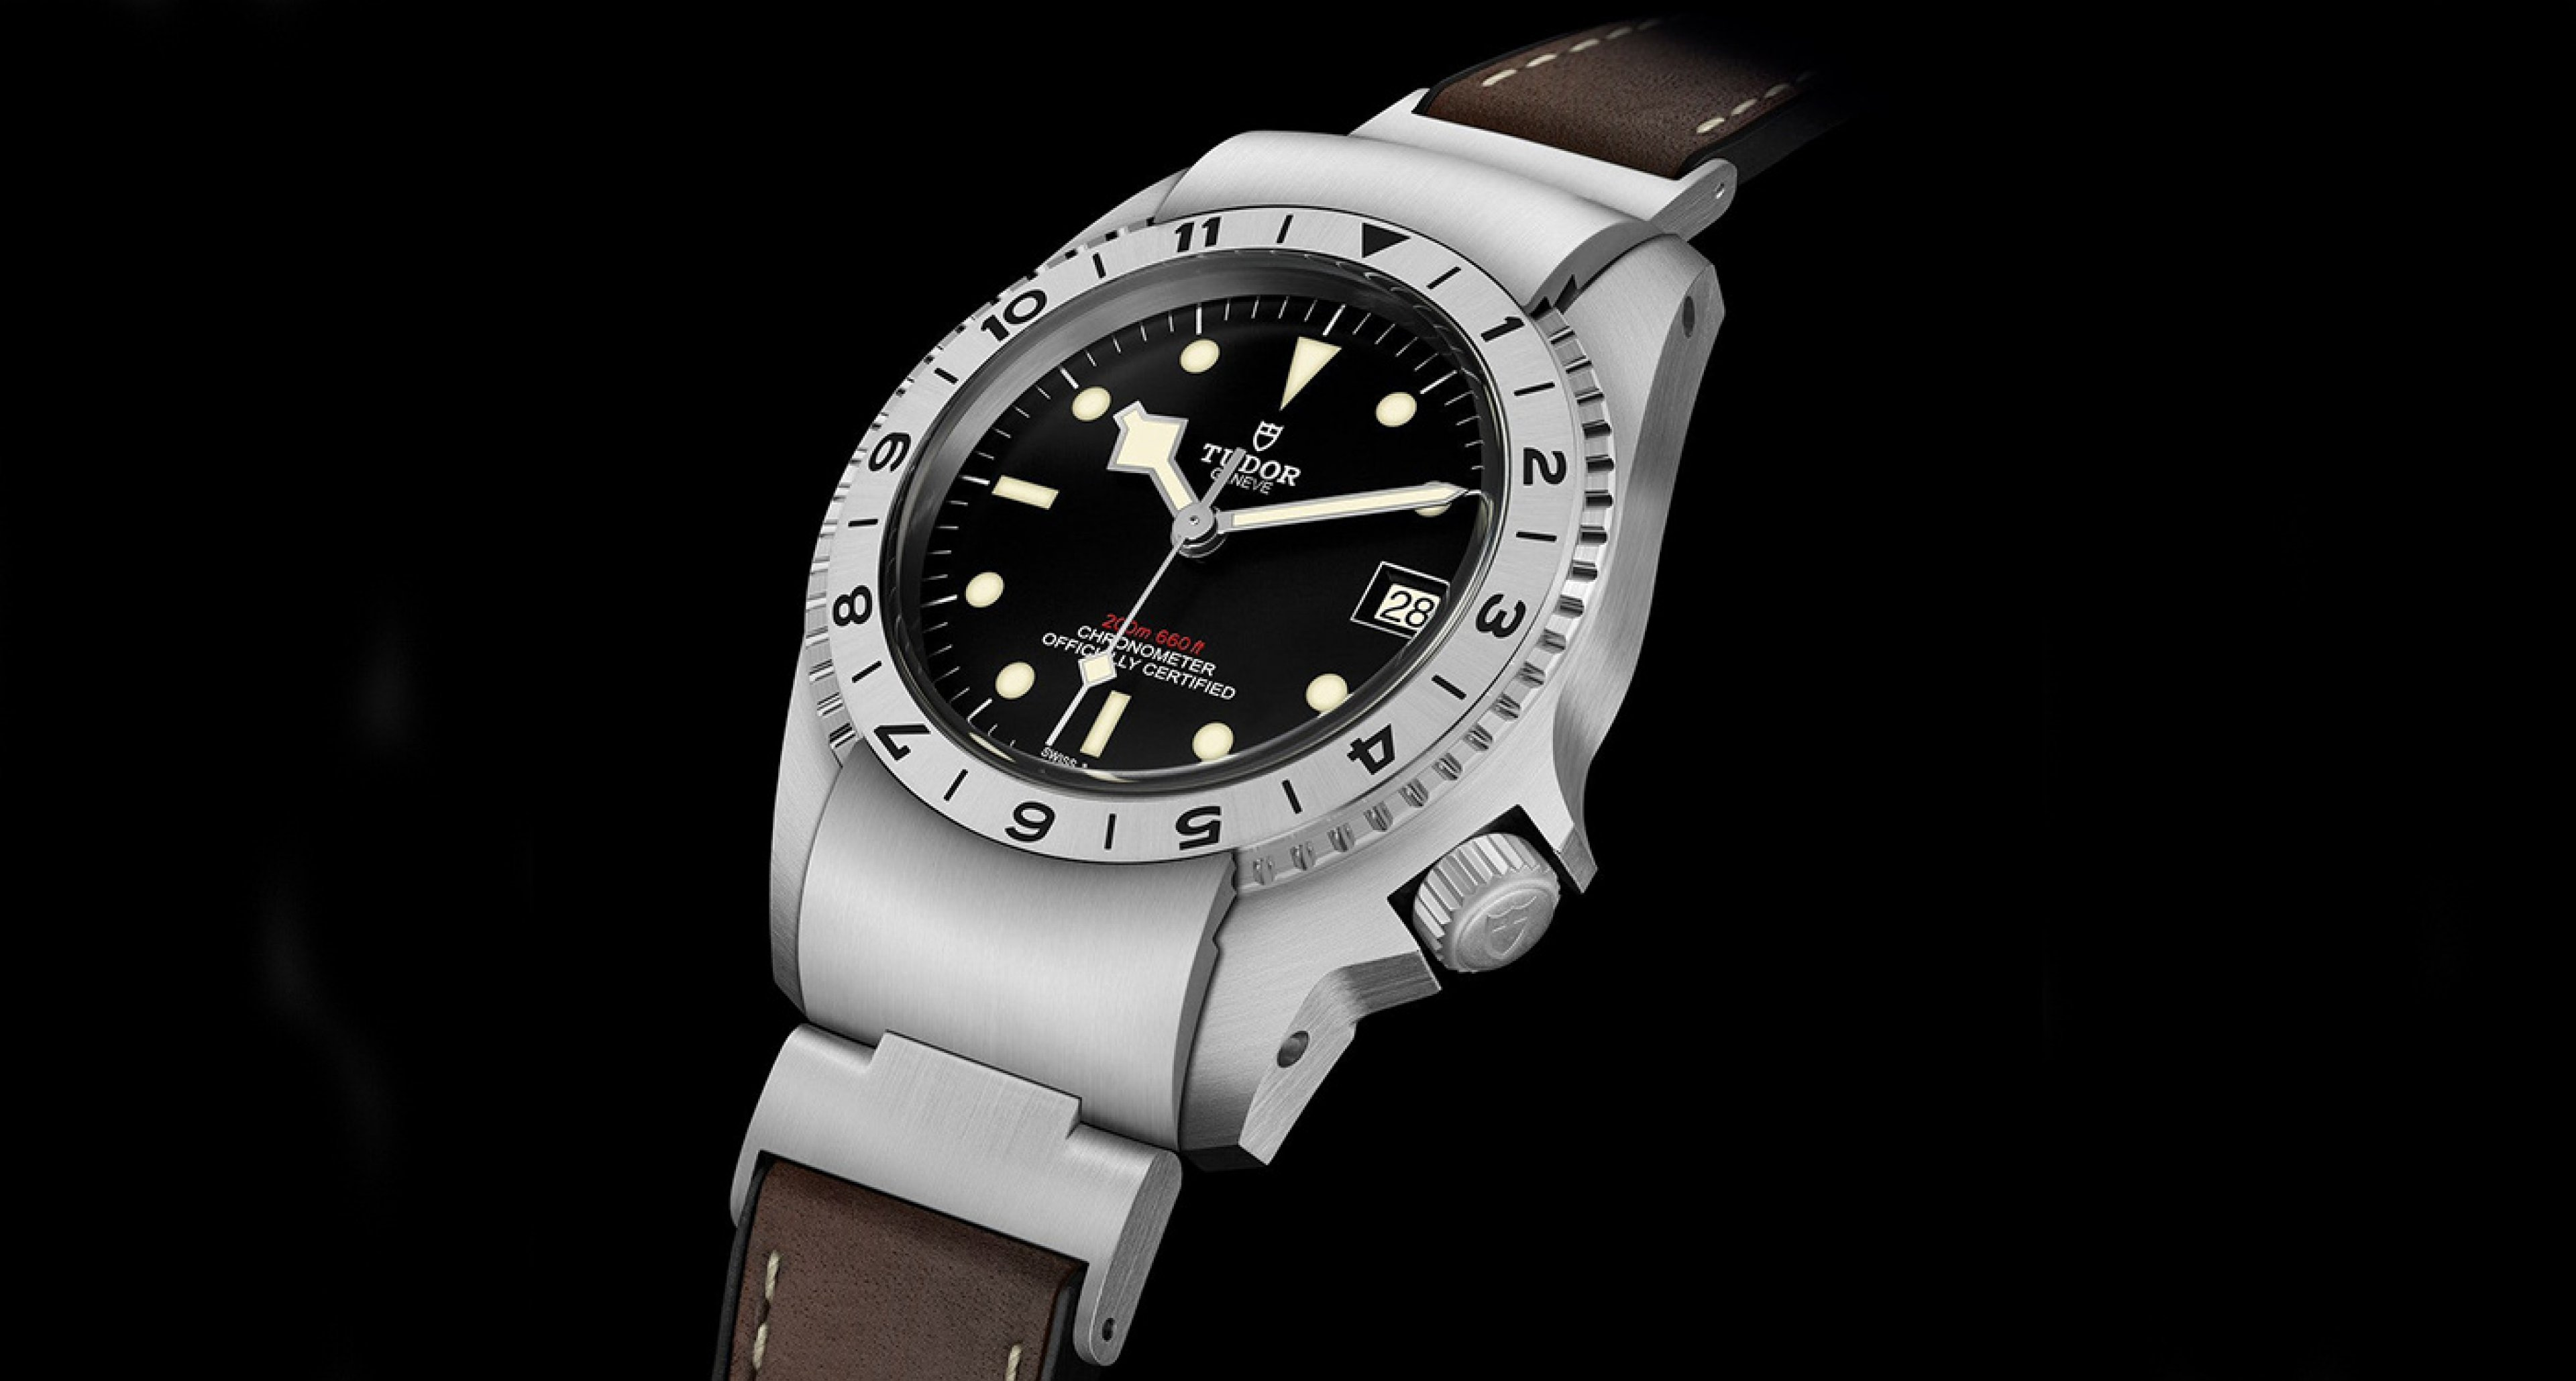 Tudor submariner 2020